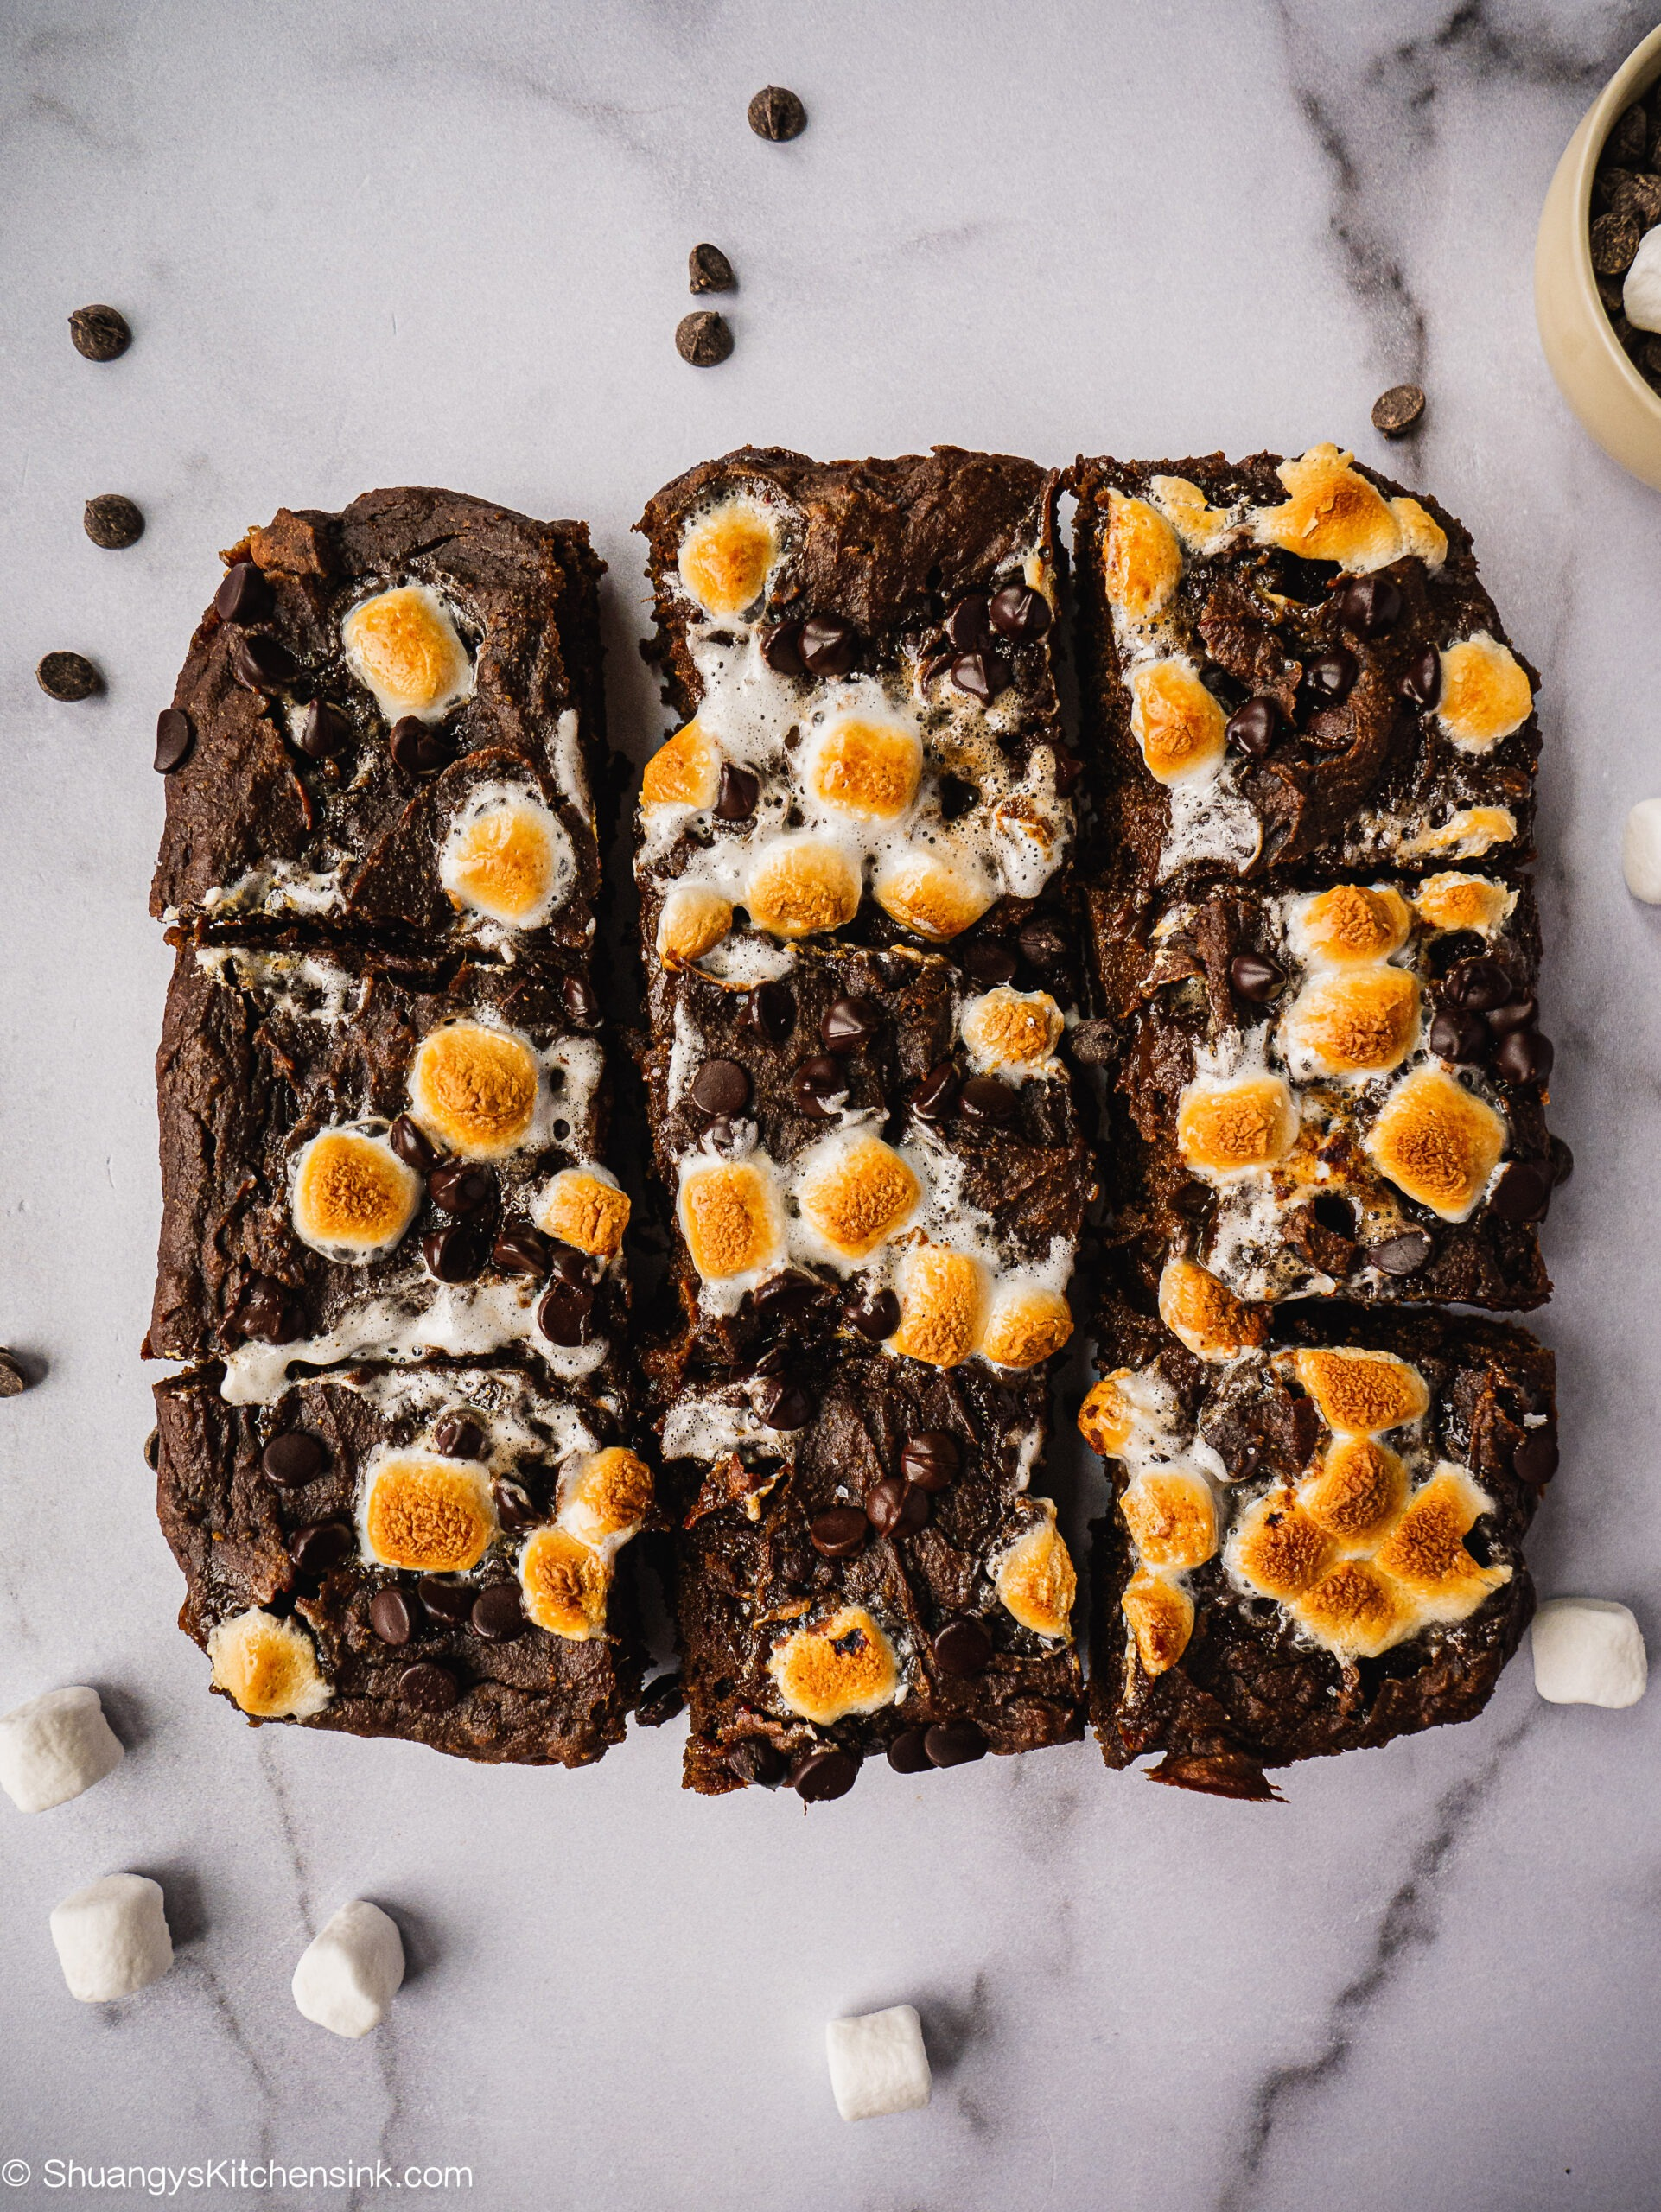 Freshly baked hot chocolate brownie with caramelized marshmallows on top.